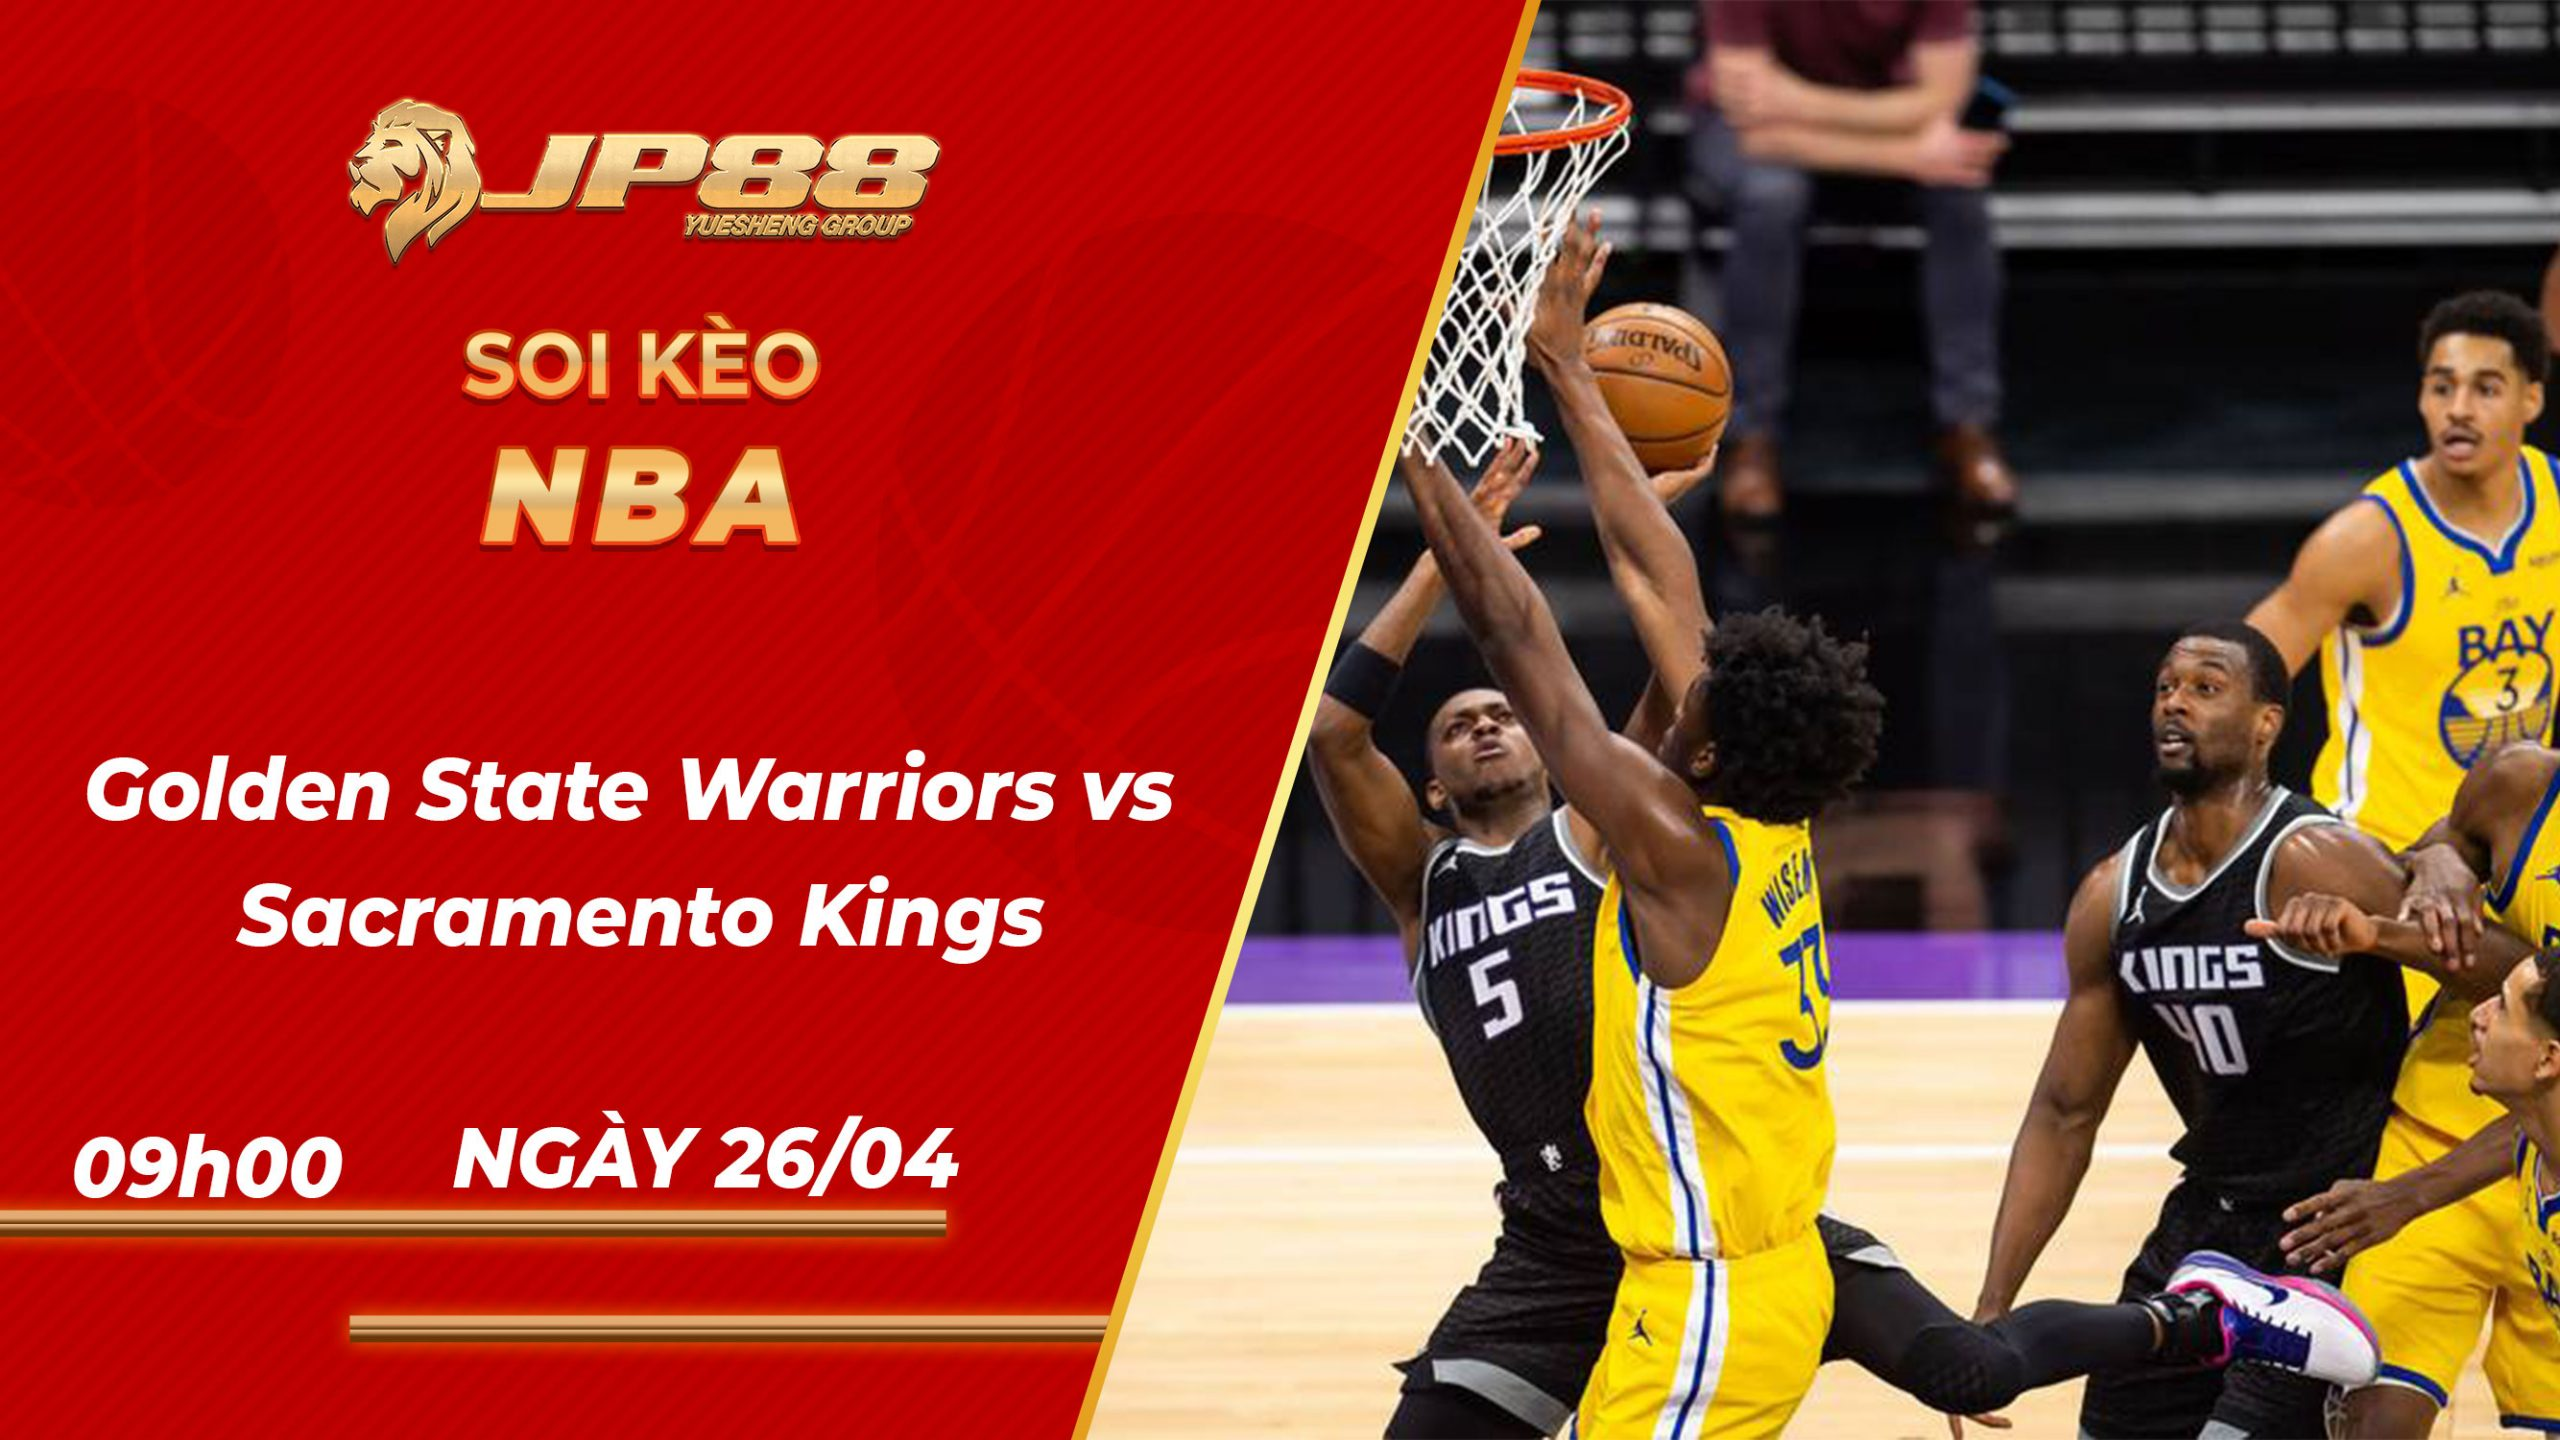 Soi kèo bóng rổ Golden State Warriors vs Sacramento Kings – 09h00 ngày 26/04/2021